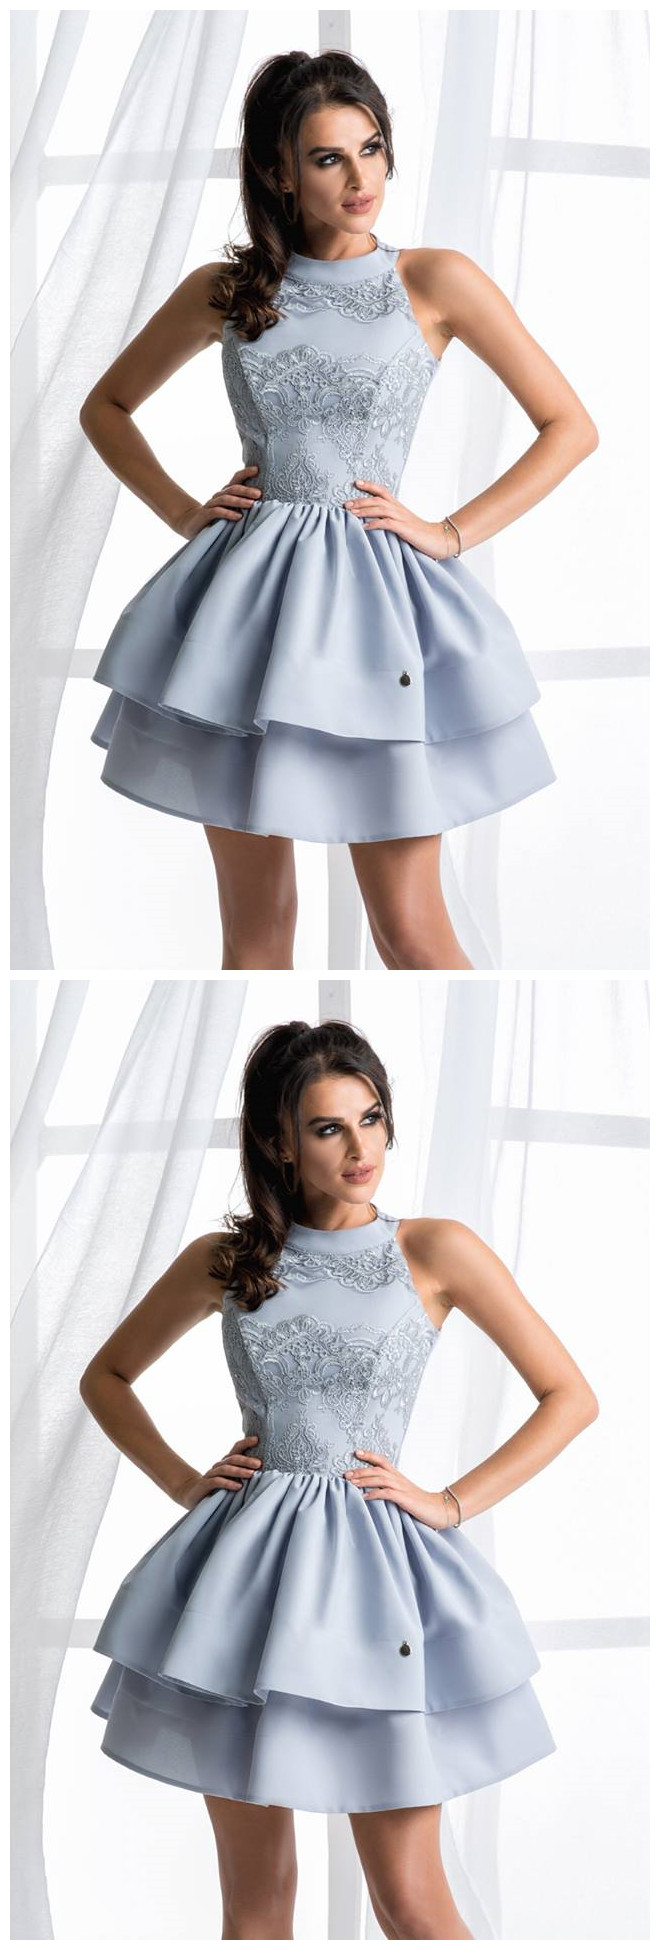 Homecoming dresses ,Lace Homecoming Dresses,Light Blue Ball Gown,Satin Homecoming Dresses